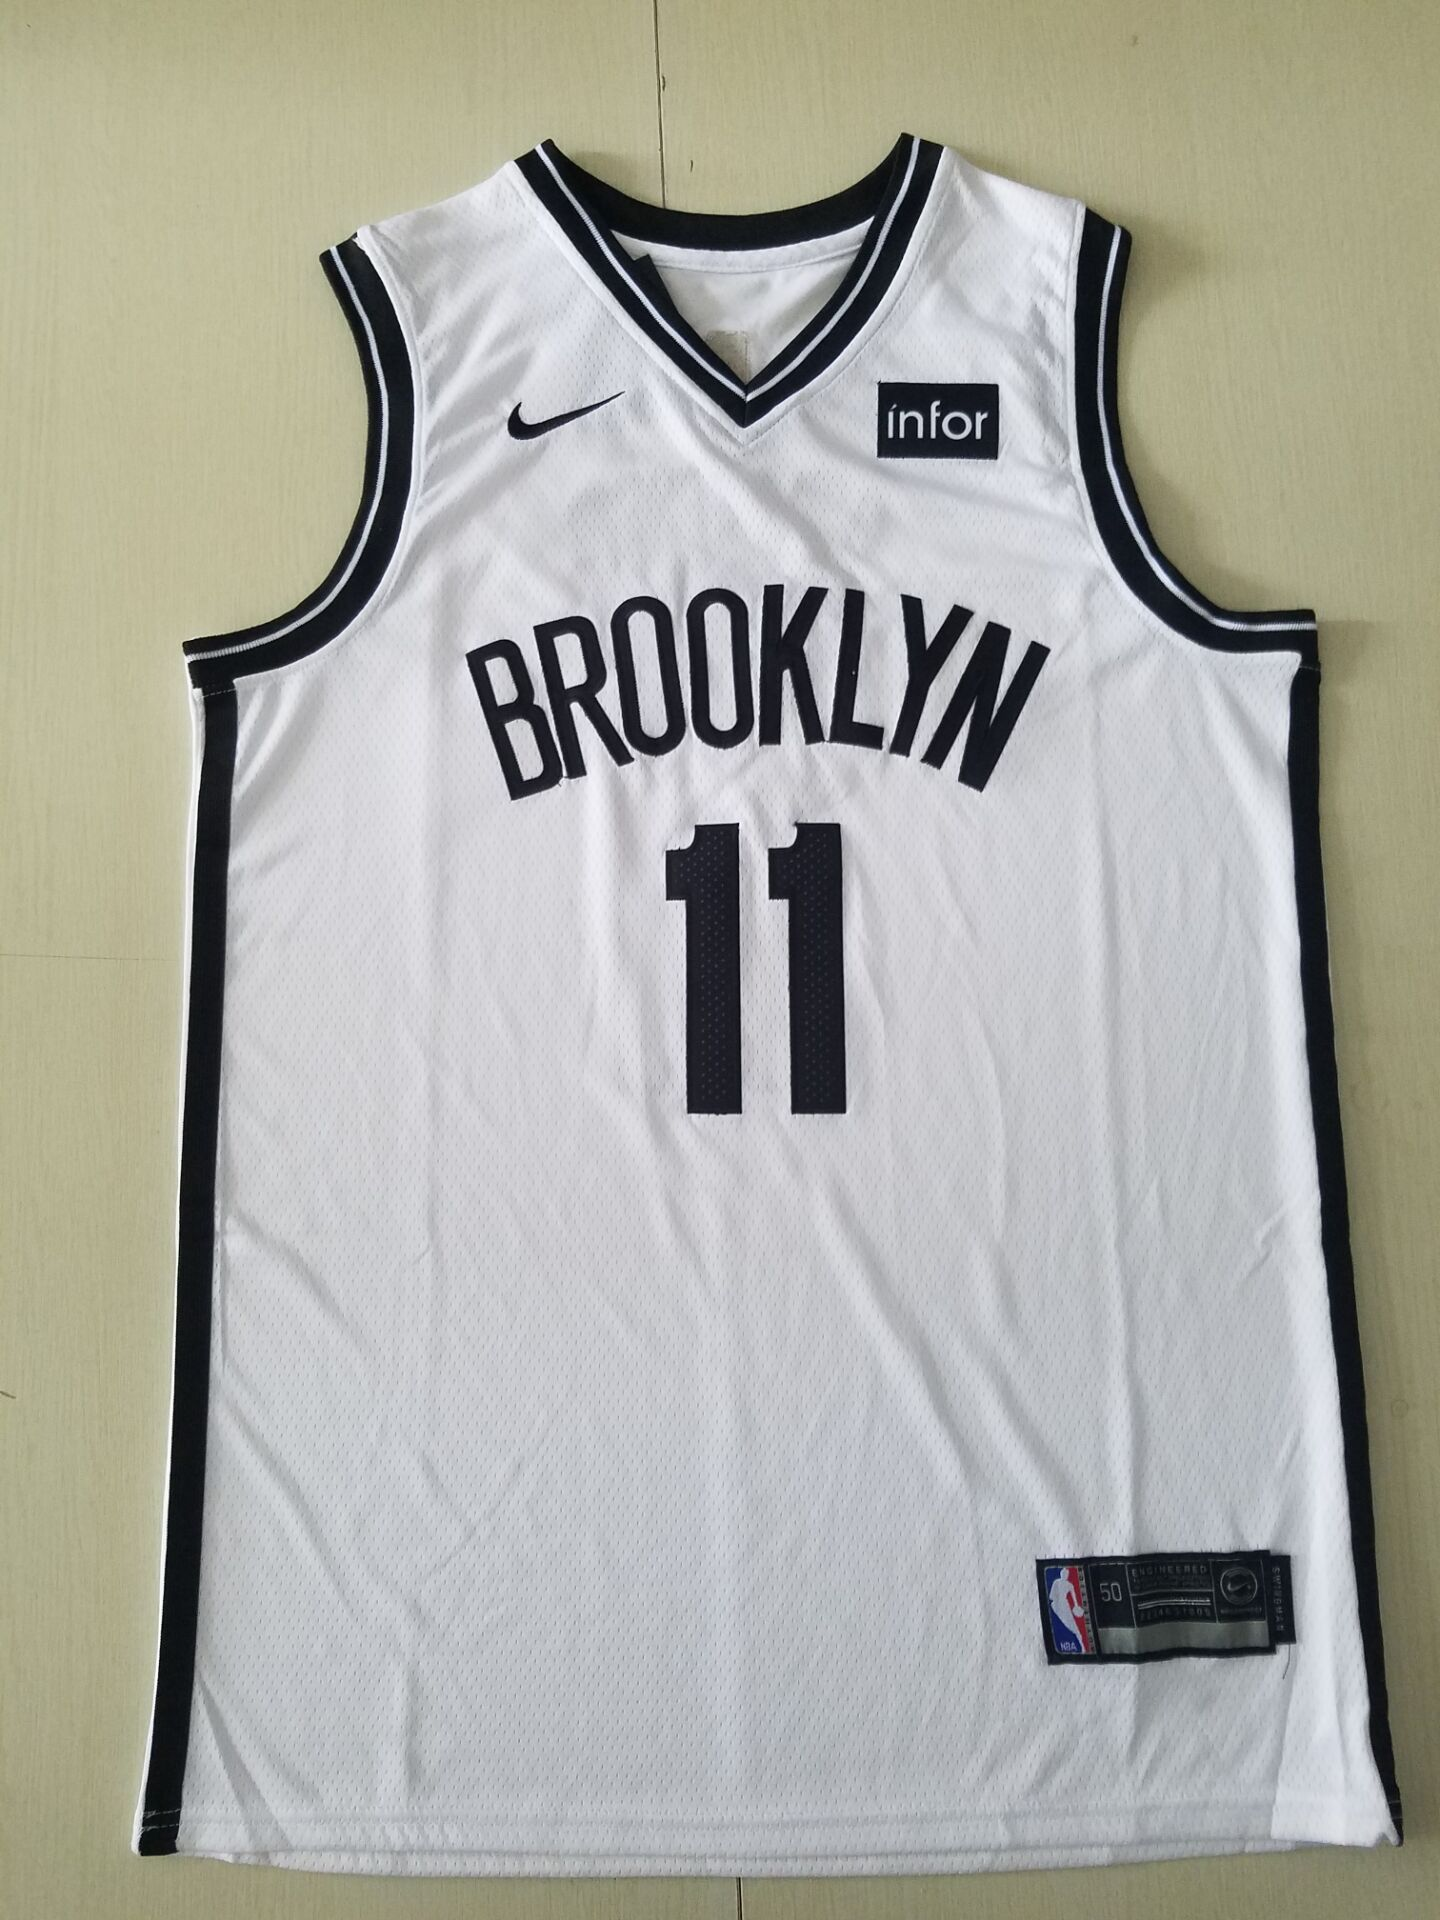 Youth Brooklyn Nets 11 Irving White Nike Game NBA Jerseys